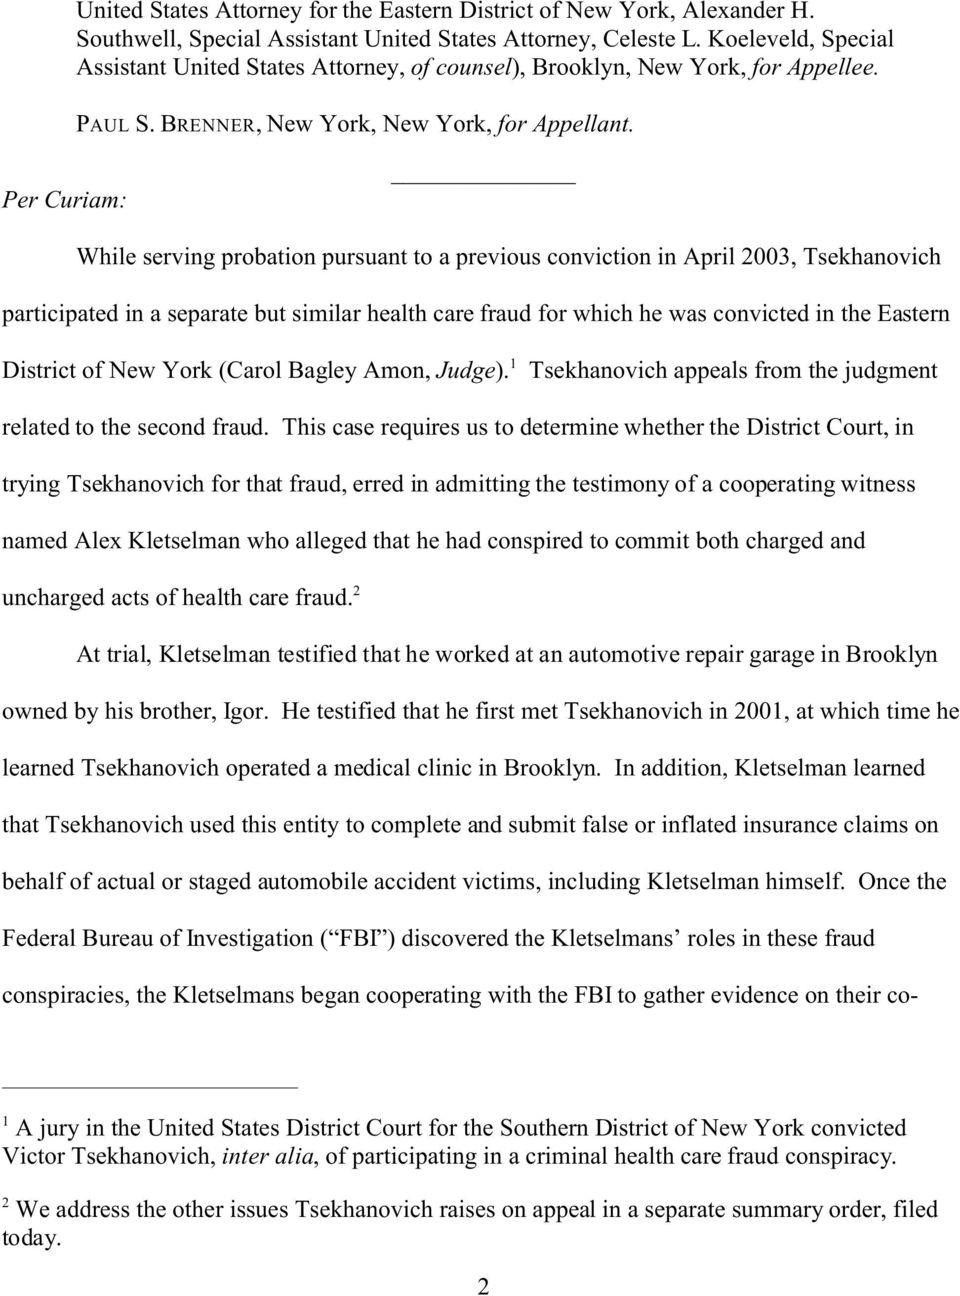 Per Curiam: While serving probation pursuant to a previous conviction in April 2003, Tsekhanovich participated in a separate but similar health care fraud for which he was convicted in the Eastern